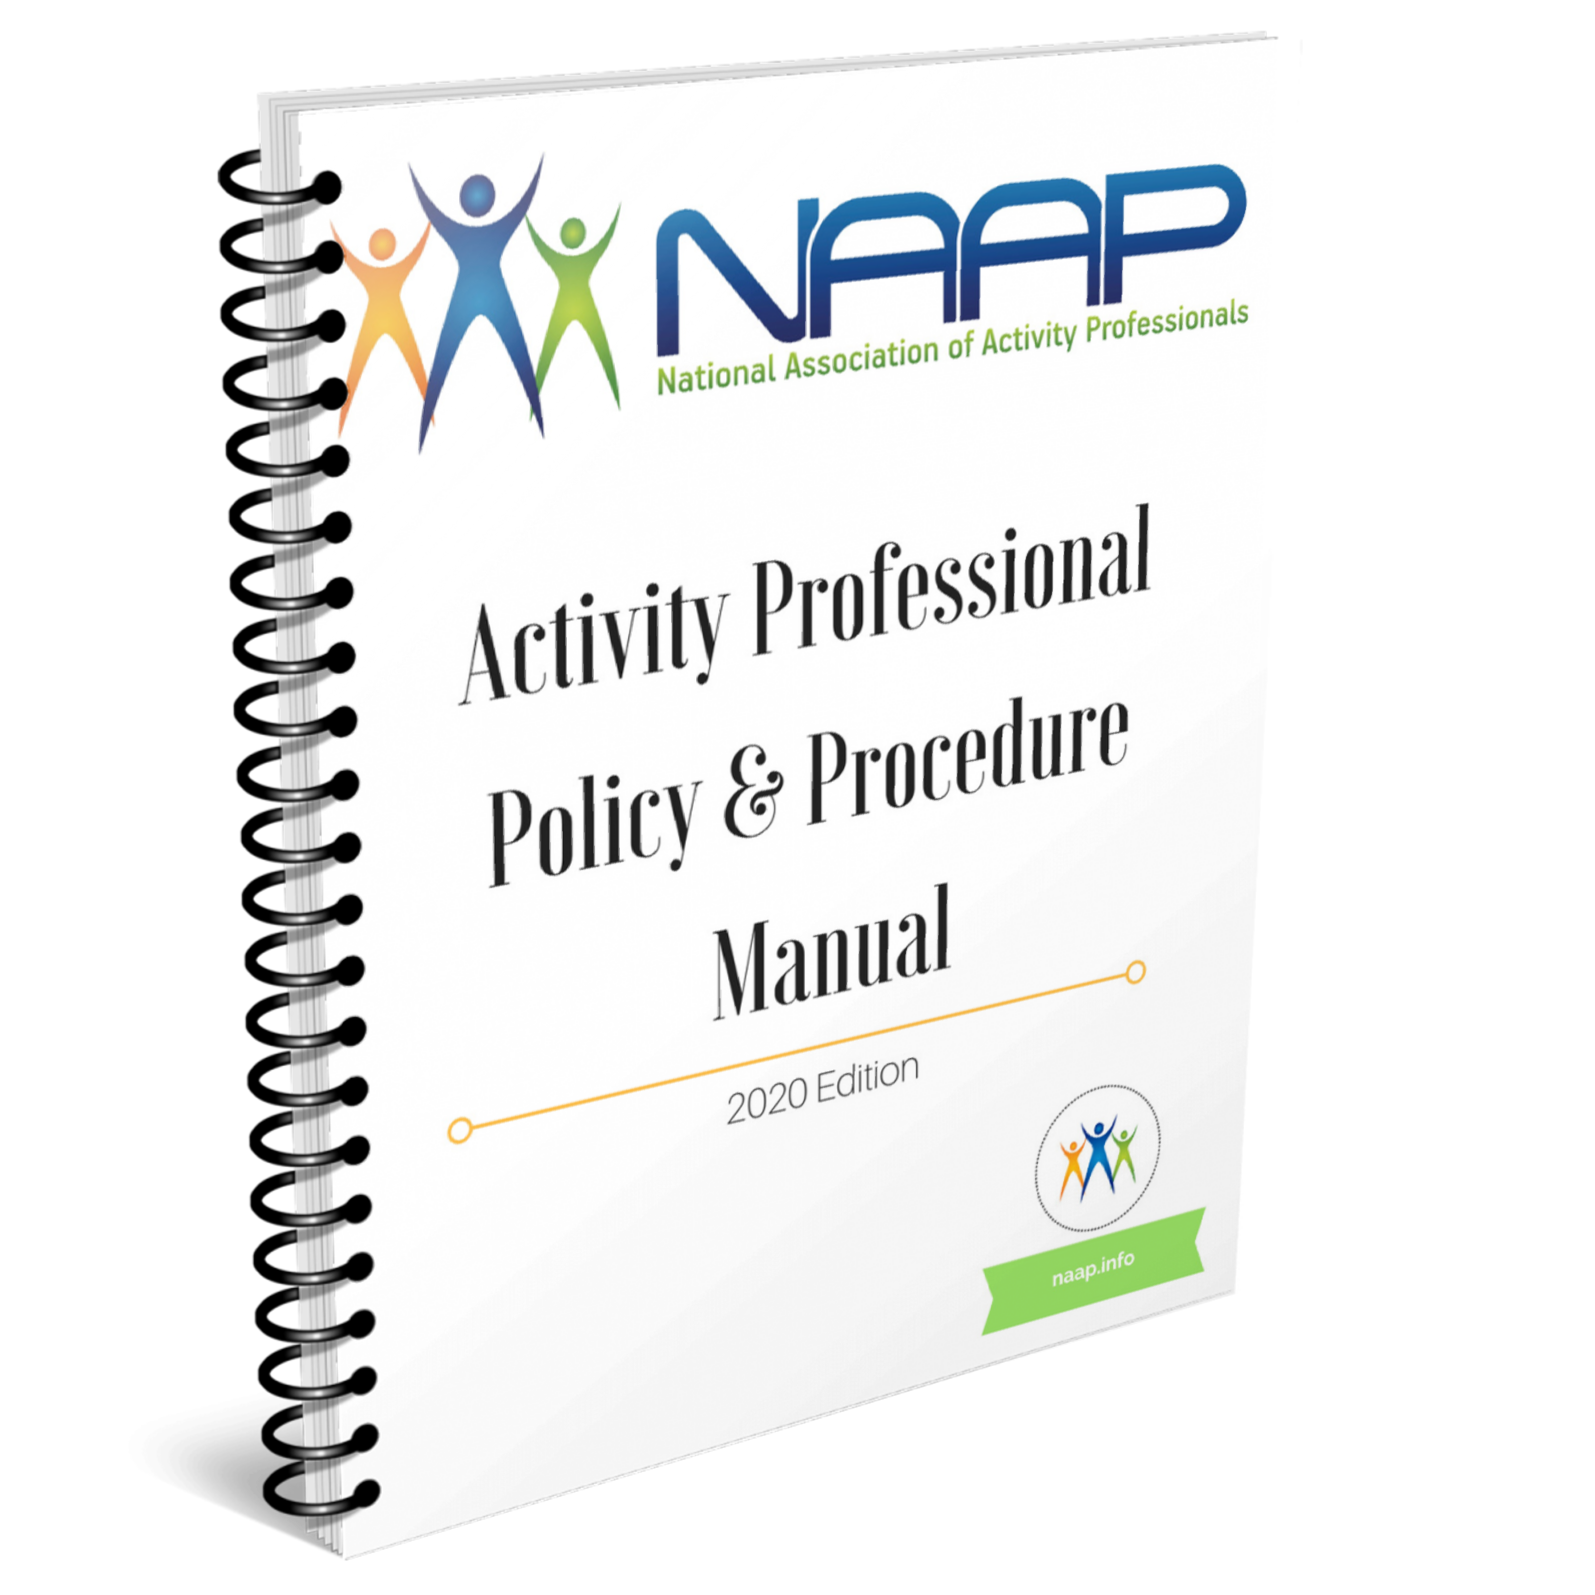 NAAP POLICY AND PROCEDURE MANUAL